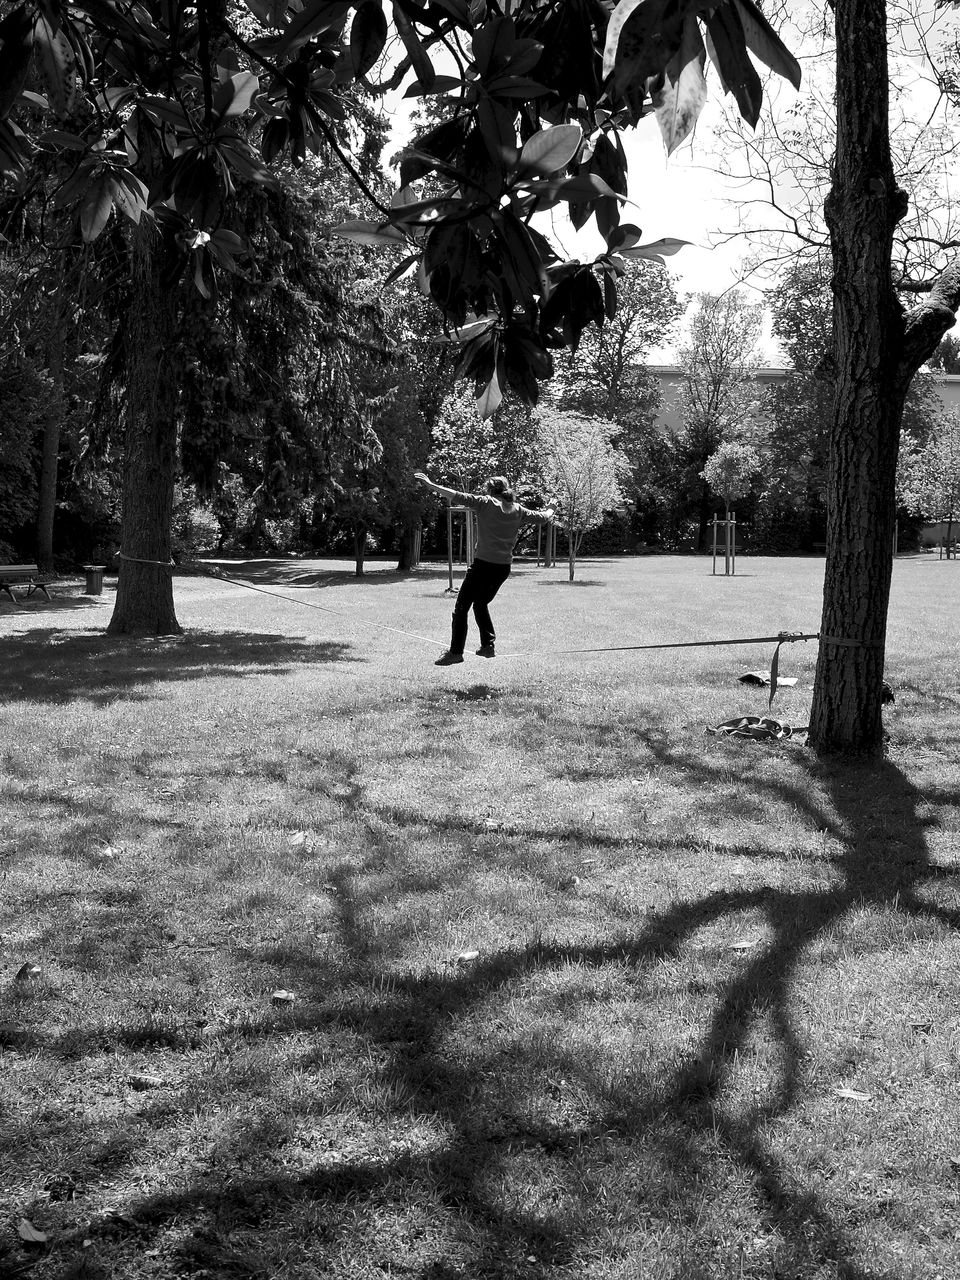 tree, growth, nature, one person, outdoors, branch, shadow, real people, day, people